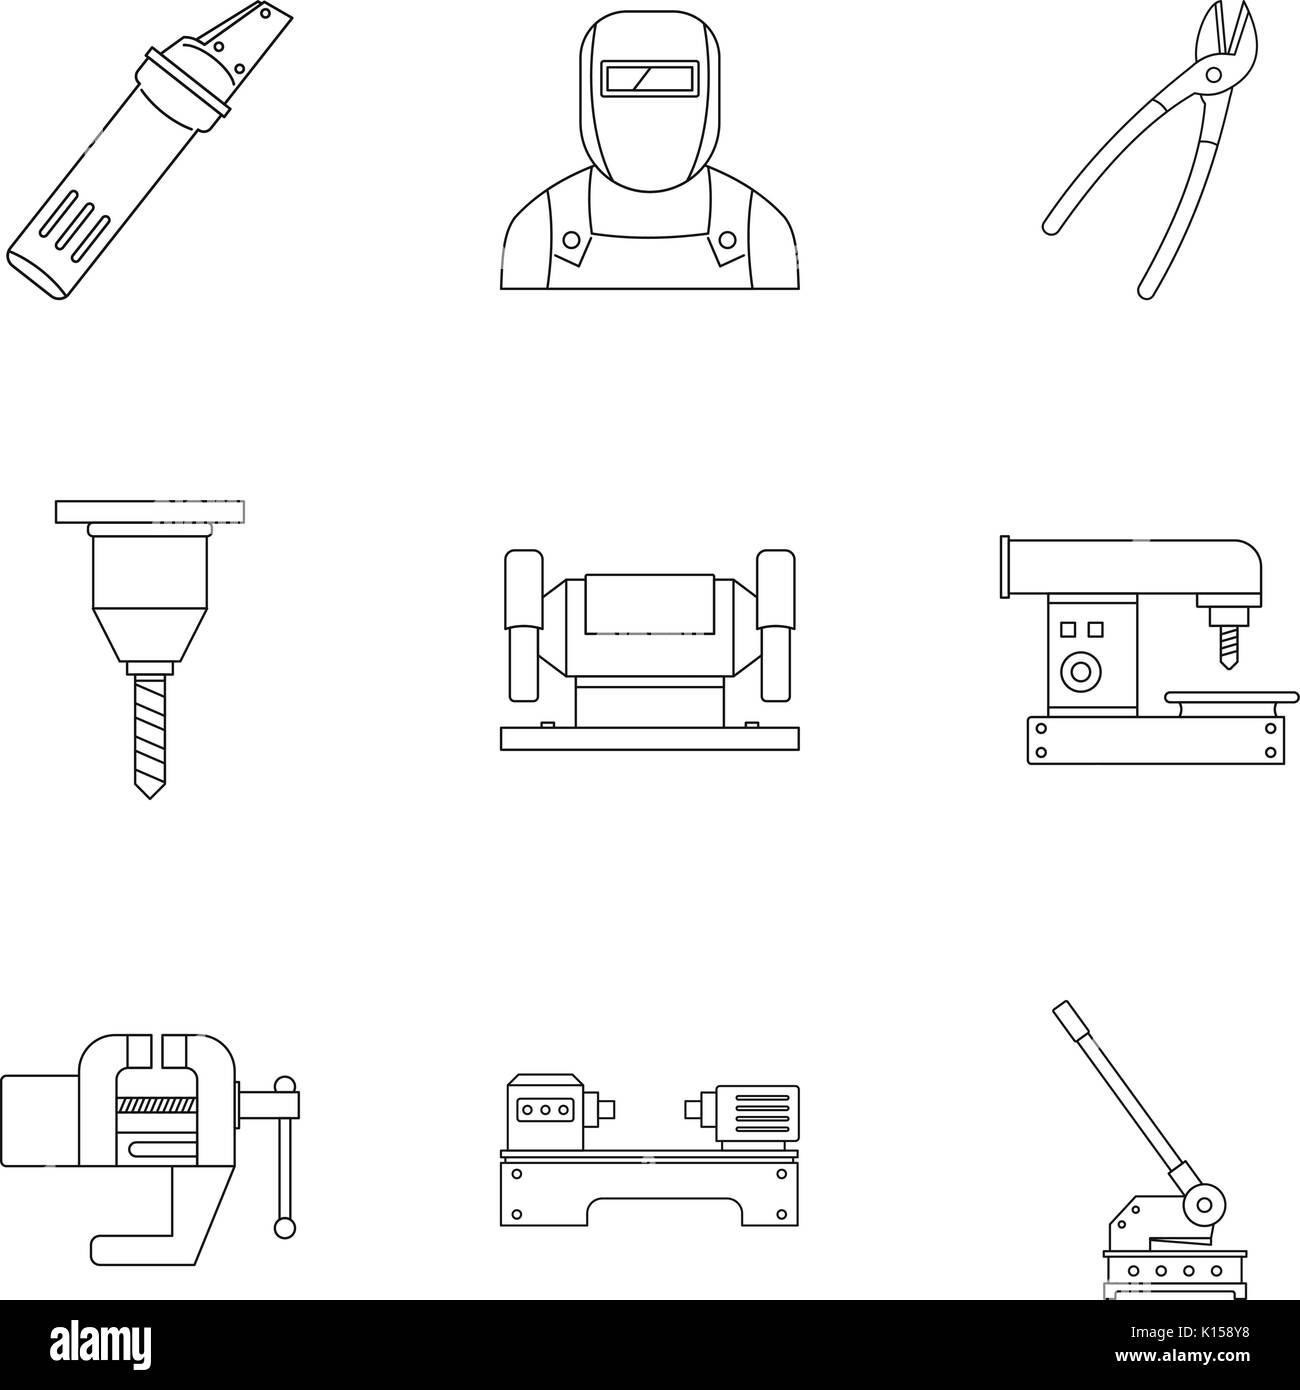 Metal processing equipment icon set, outline style - Stock Image